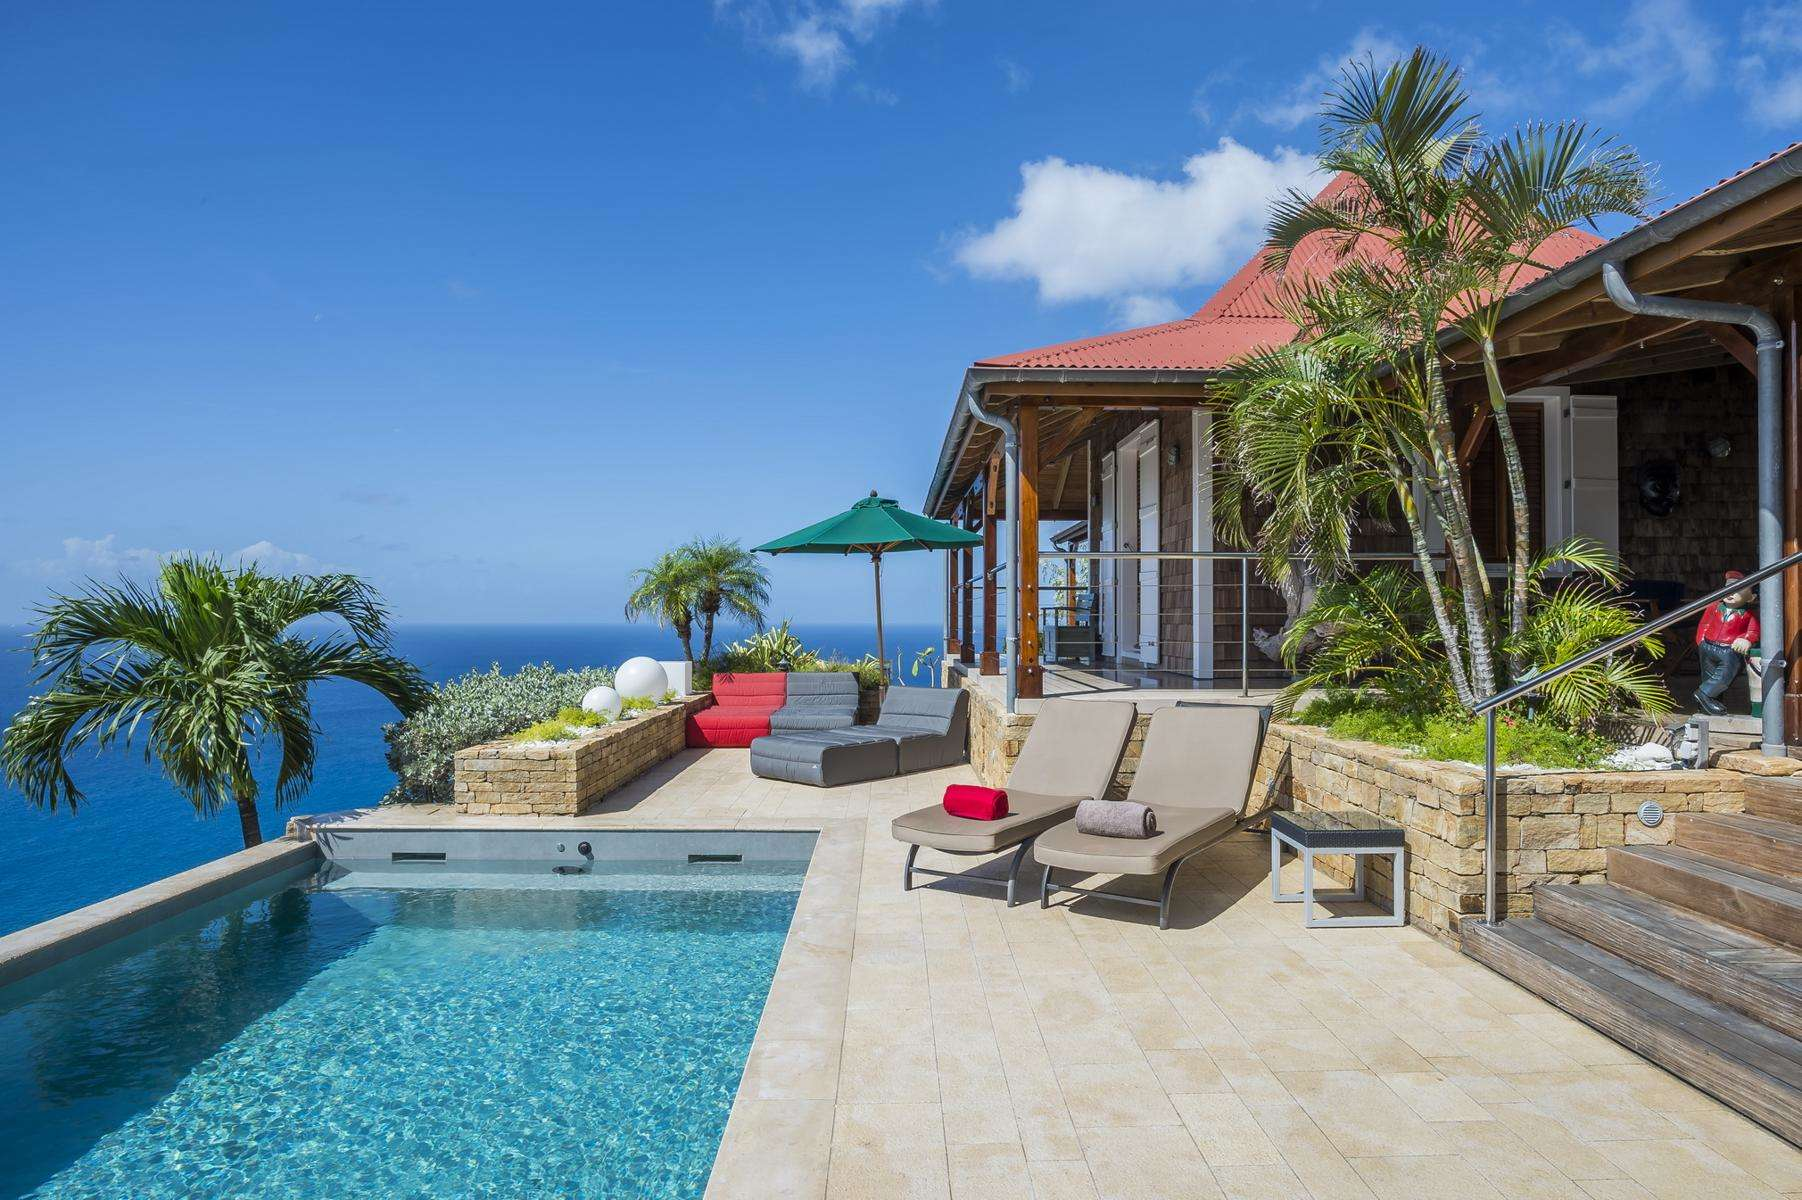 Luxury villa rentals caribbean - St barthelemy - Colombier - No location 4 - Hurakan - Image 1/27